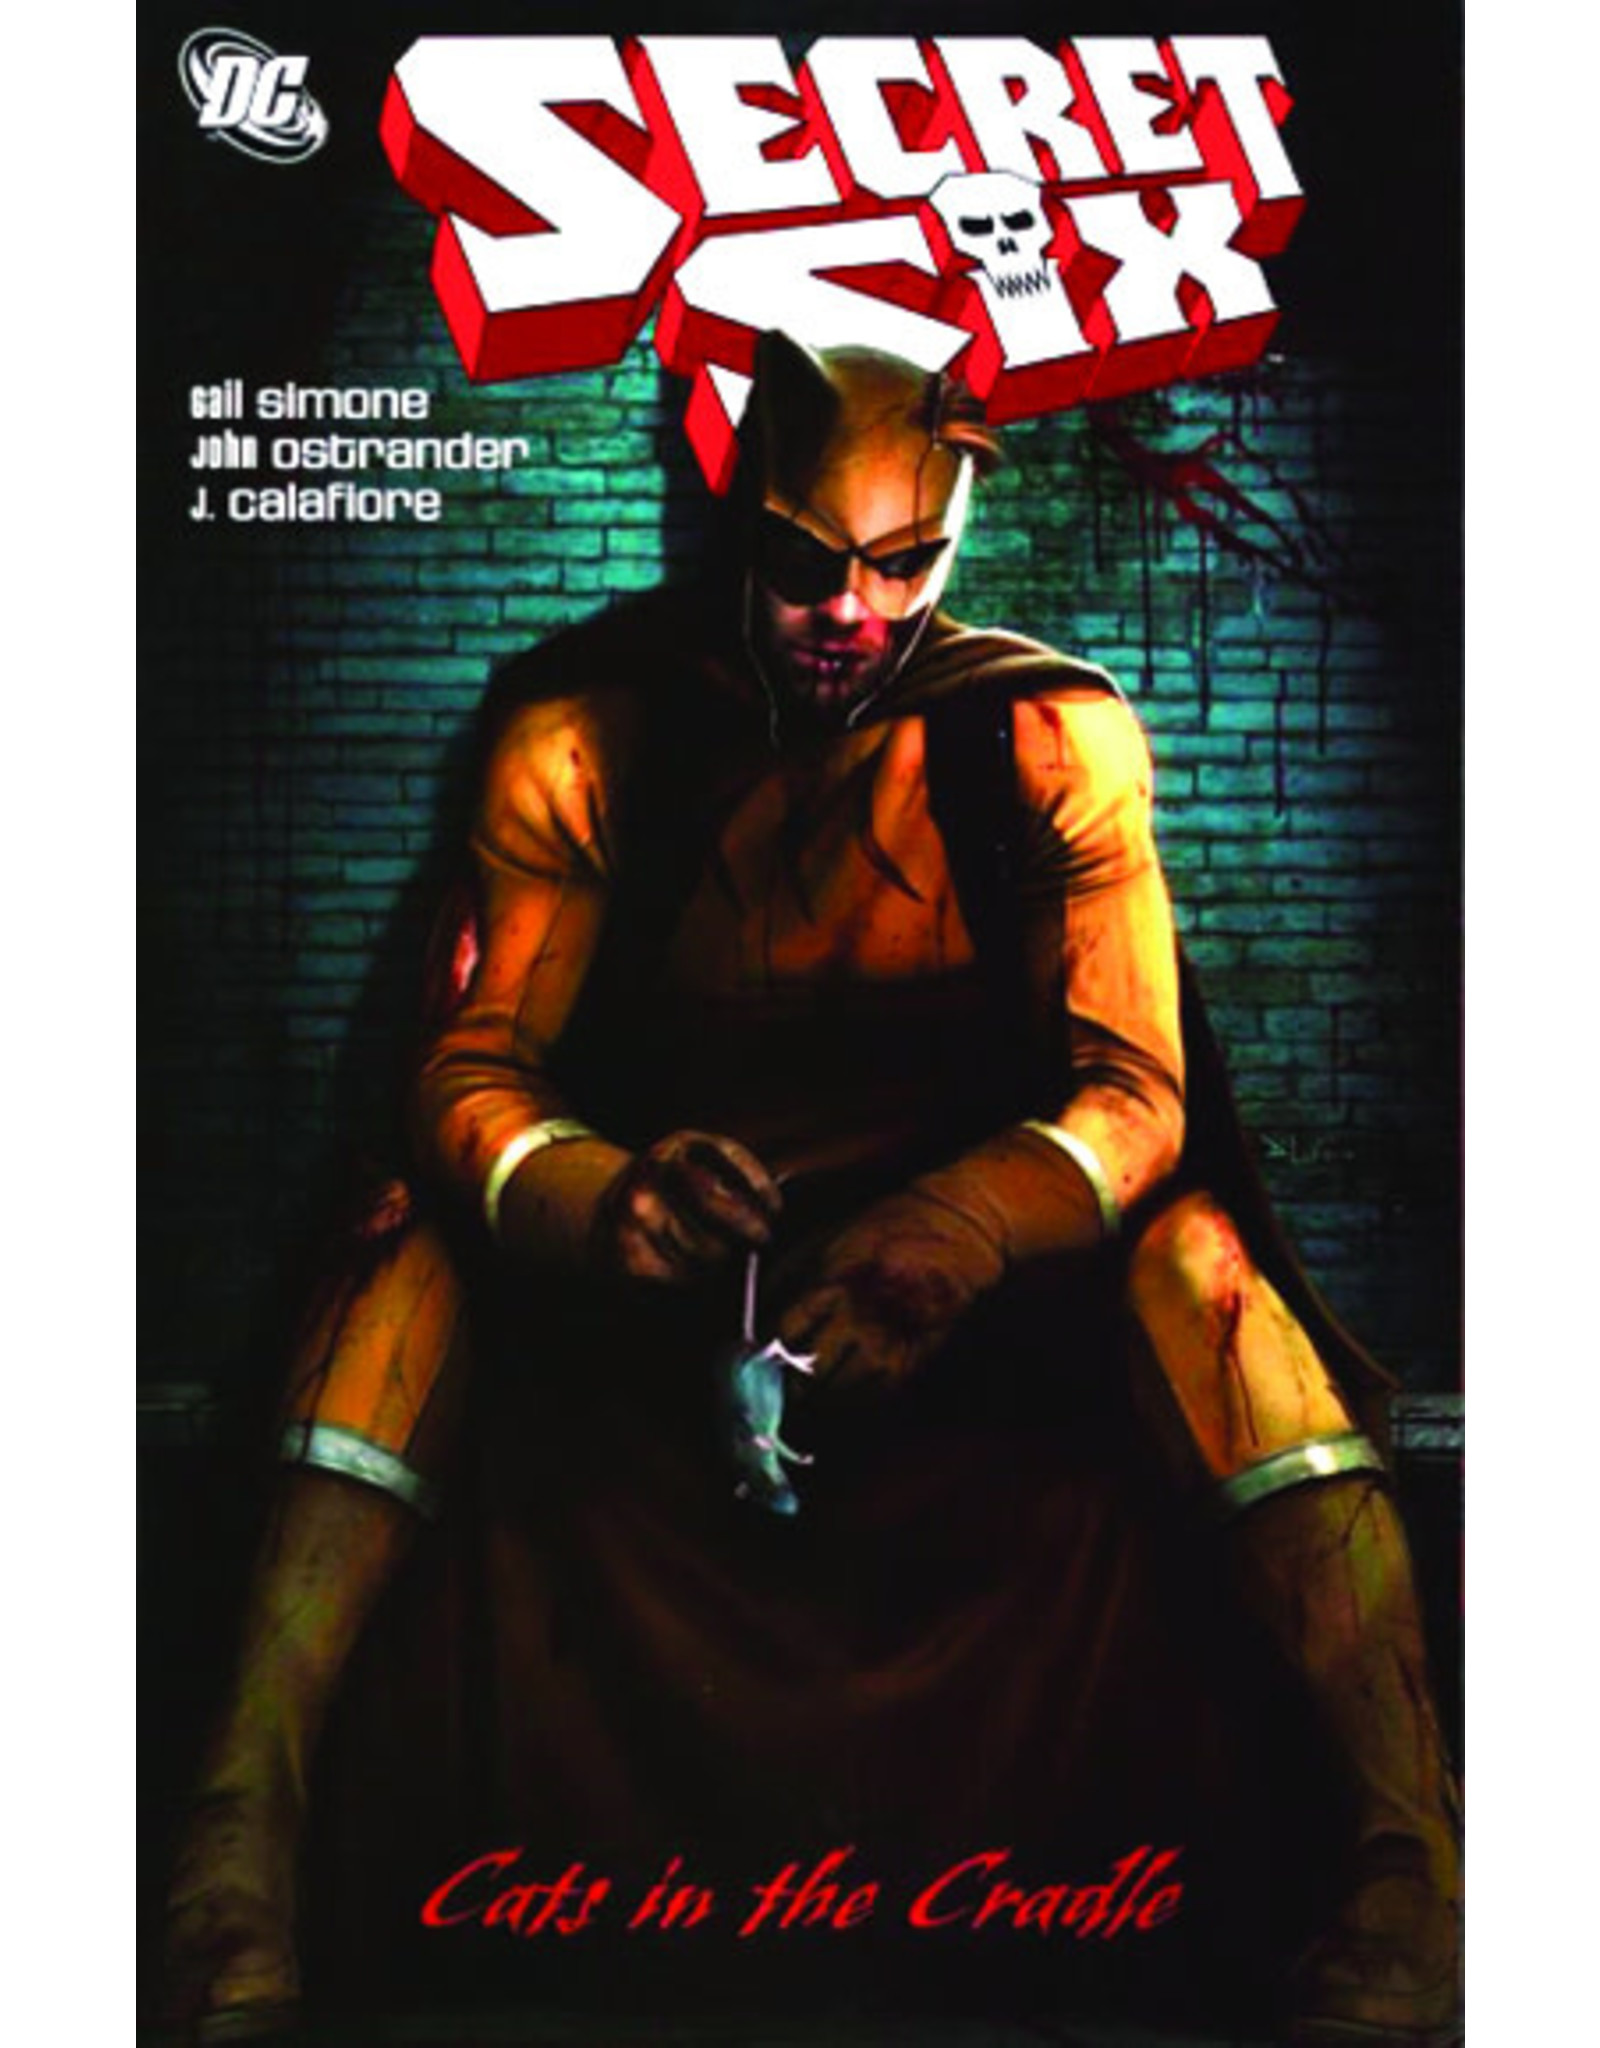 DC COMICS SECRET SIX VOL 04 CATS IN THE CRADLE TP